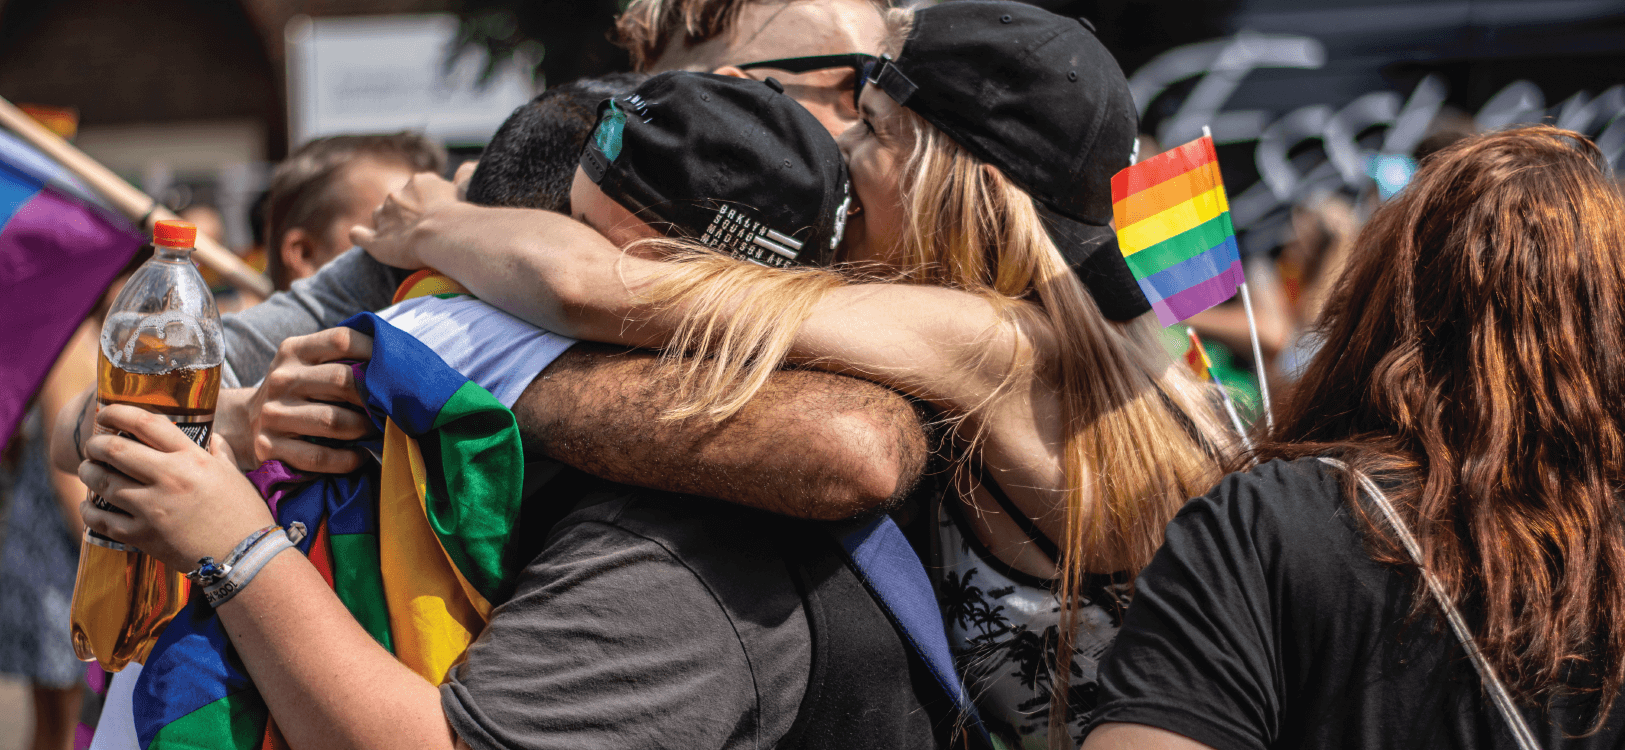 image of people hugging at pride parade